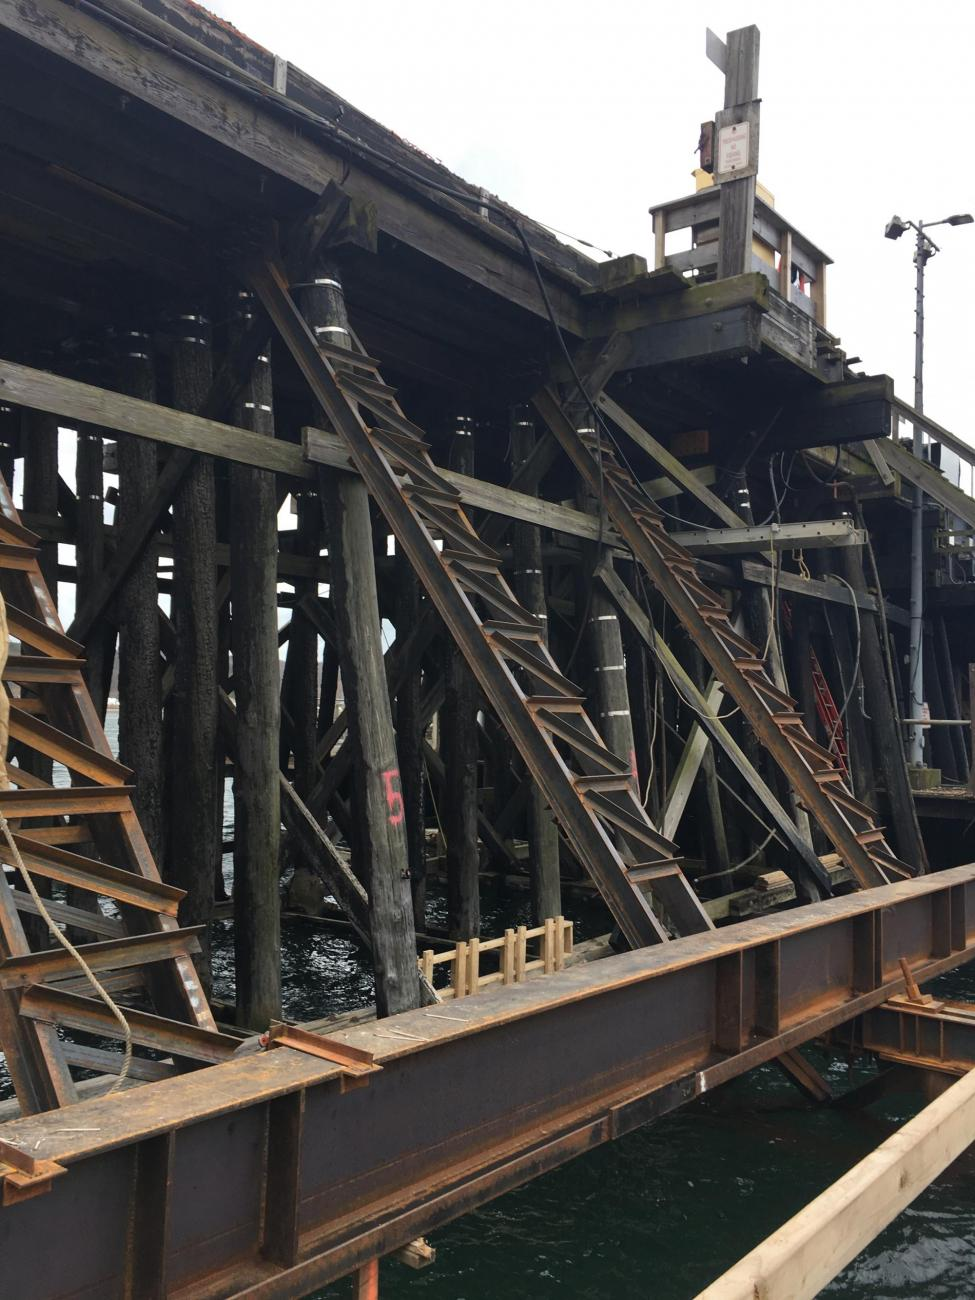 Gloucester Drawbridge Replacement construction, with a detail of steel supports